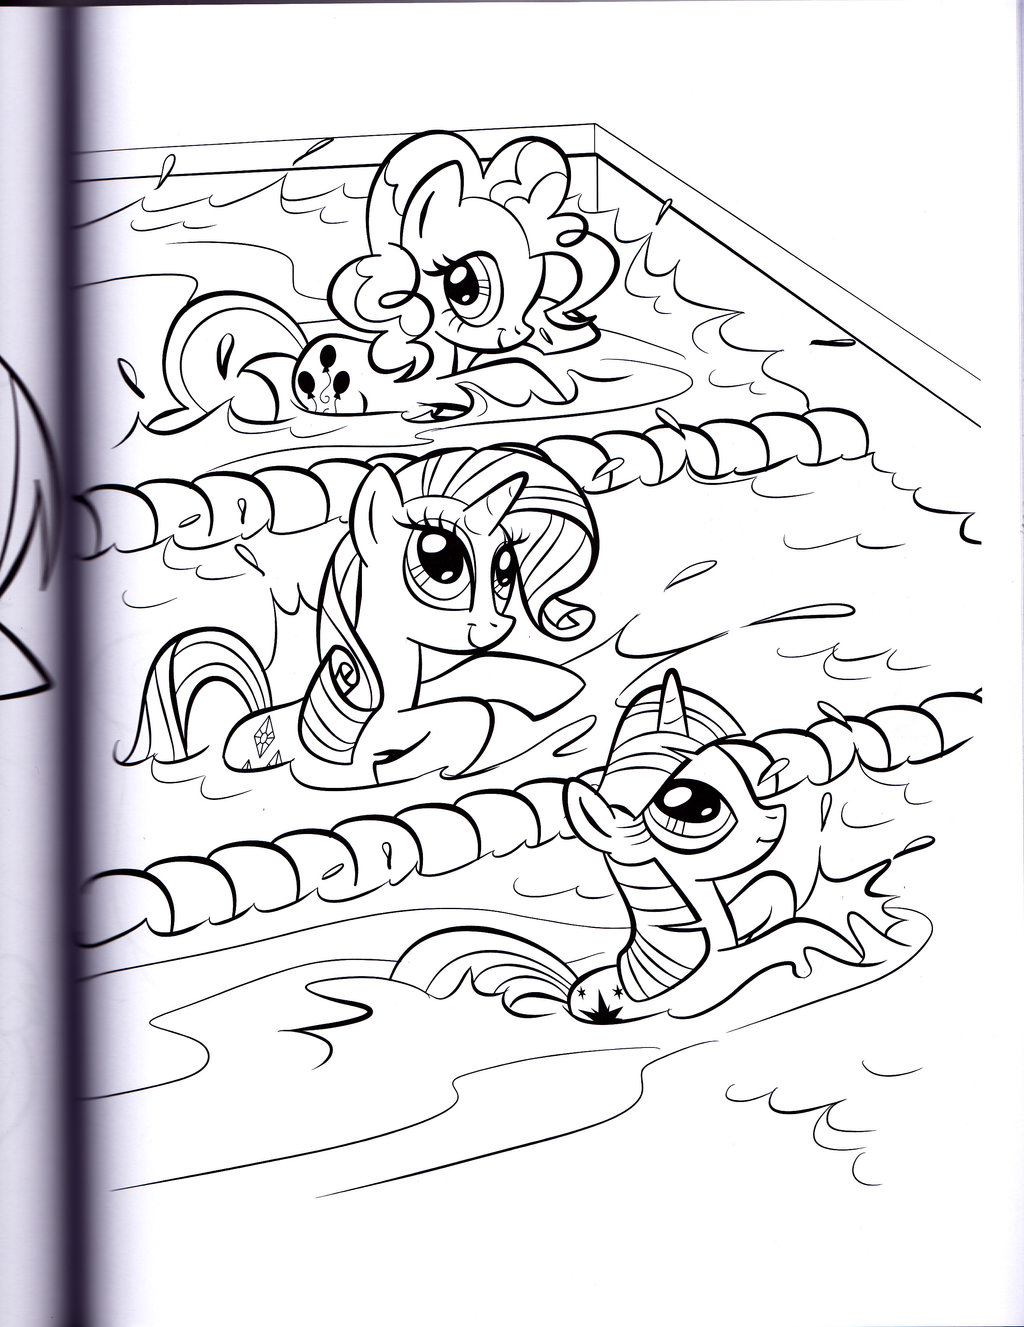 rarity and pinkie swimming mlp coloring book by kwark85 - Mlp Coloring Book